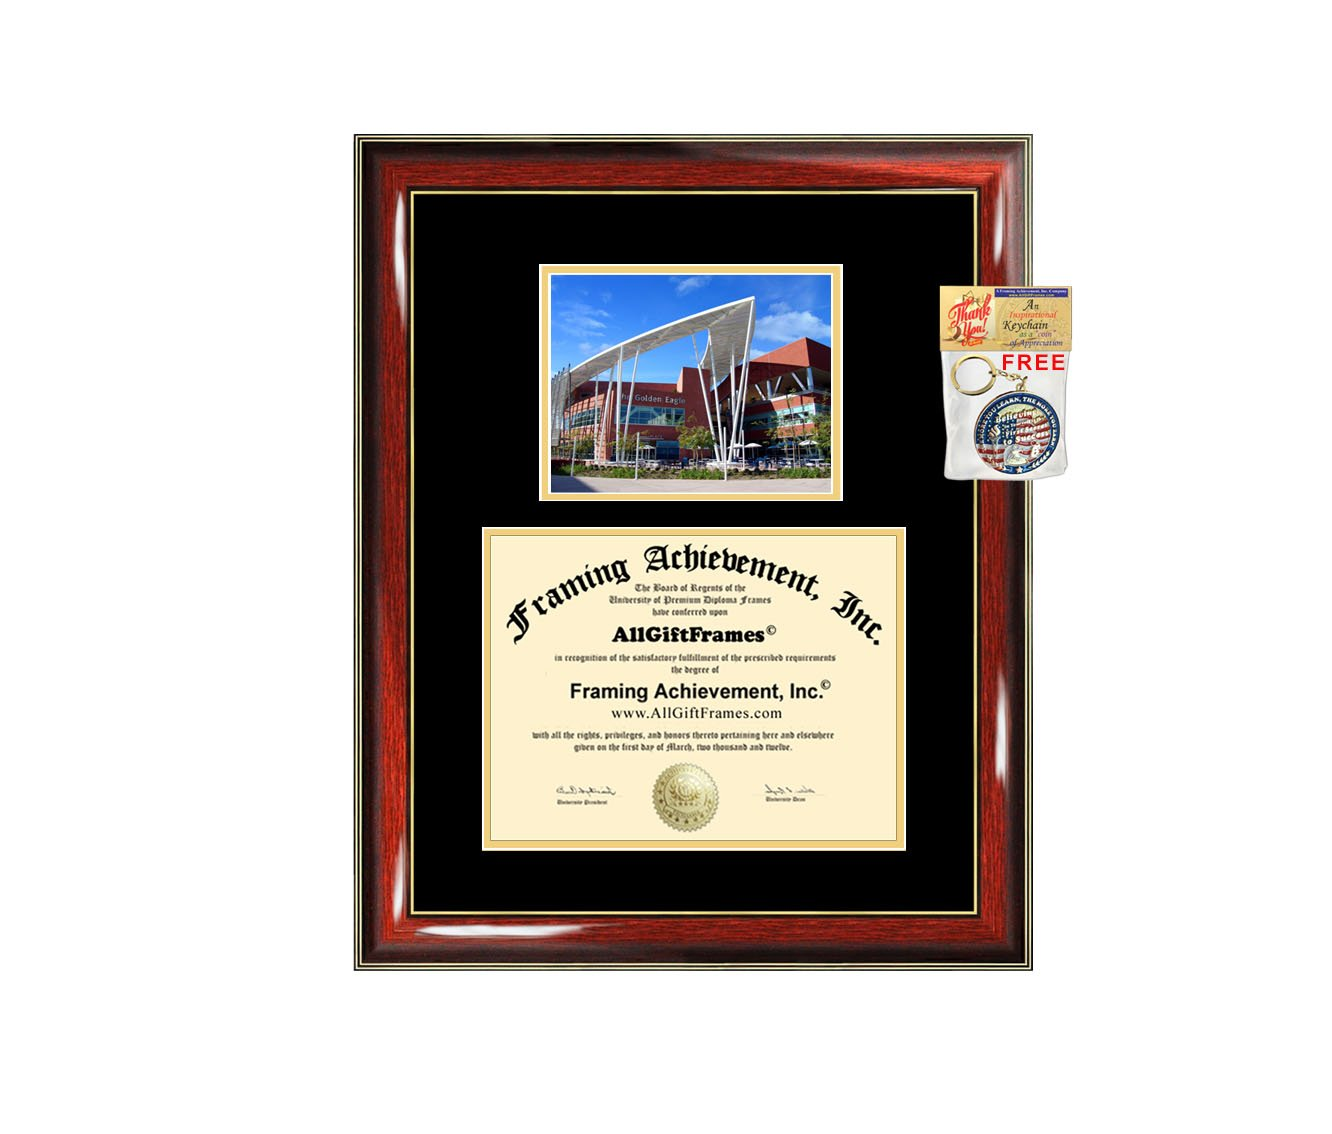 California State University Los Angeles Diploma Frame CSULA Graduation Degree Frame Matted Campus College Photo Graduation Certificate Plaque University Framing Graduate Gift Collegiate